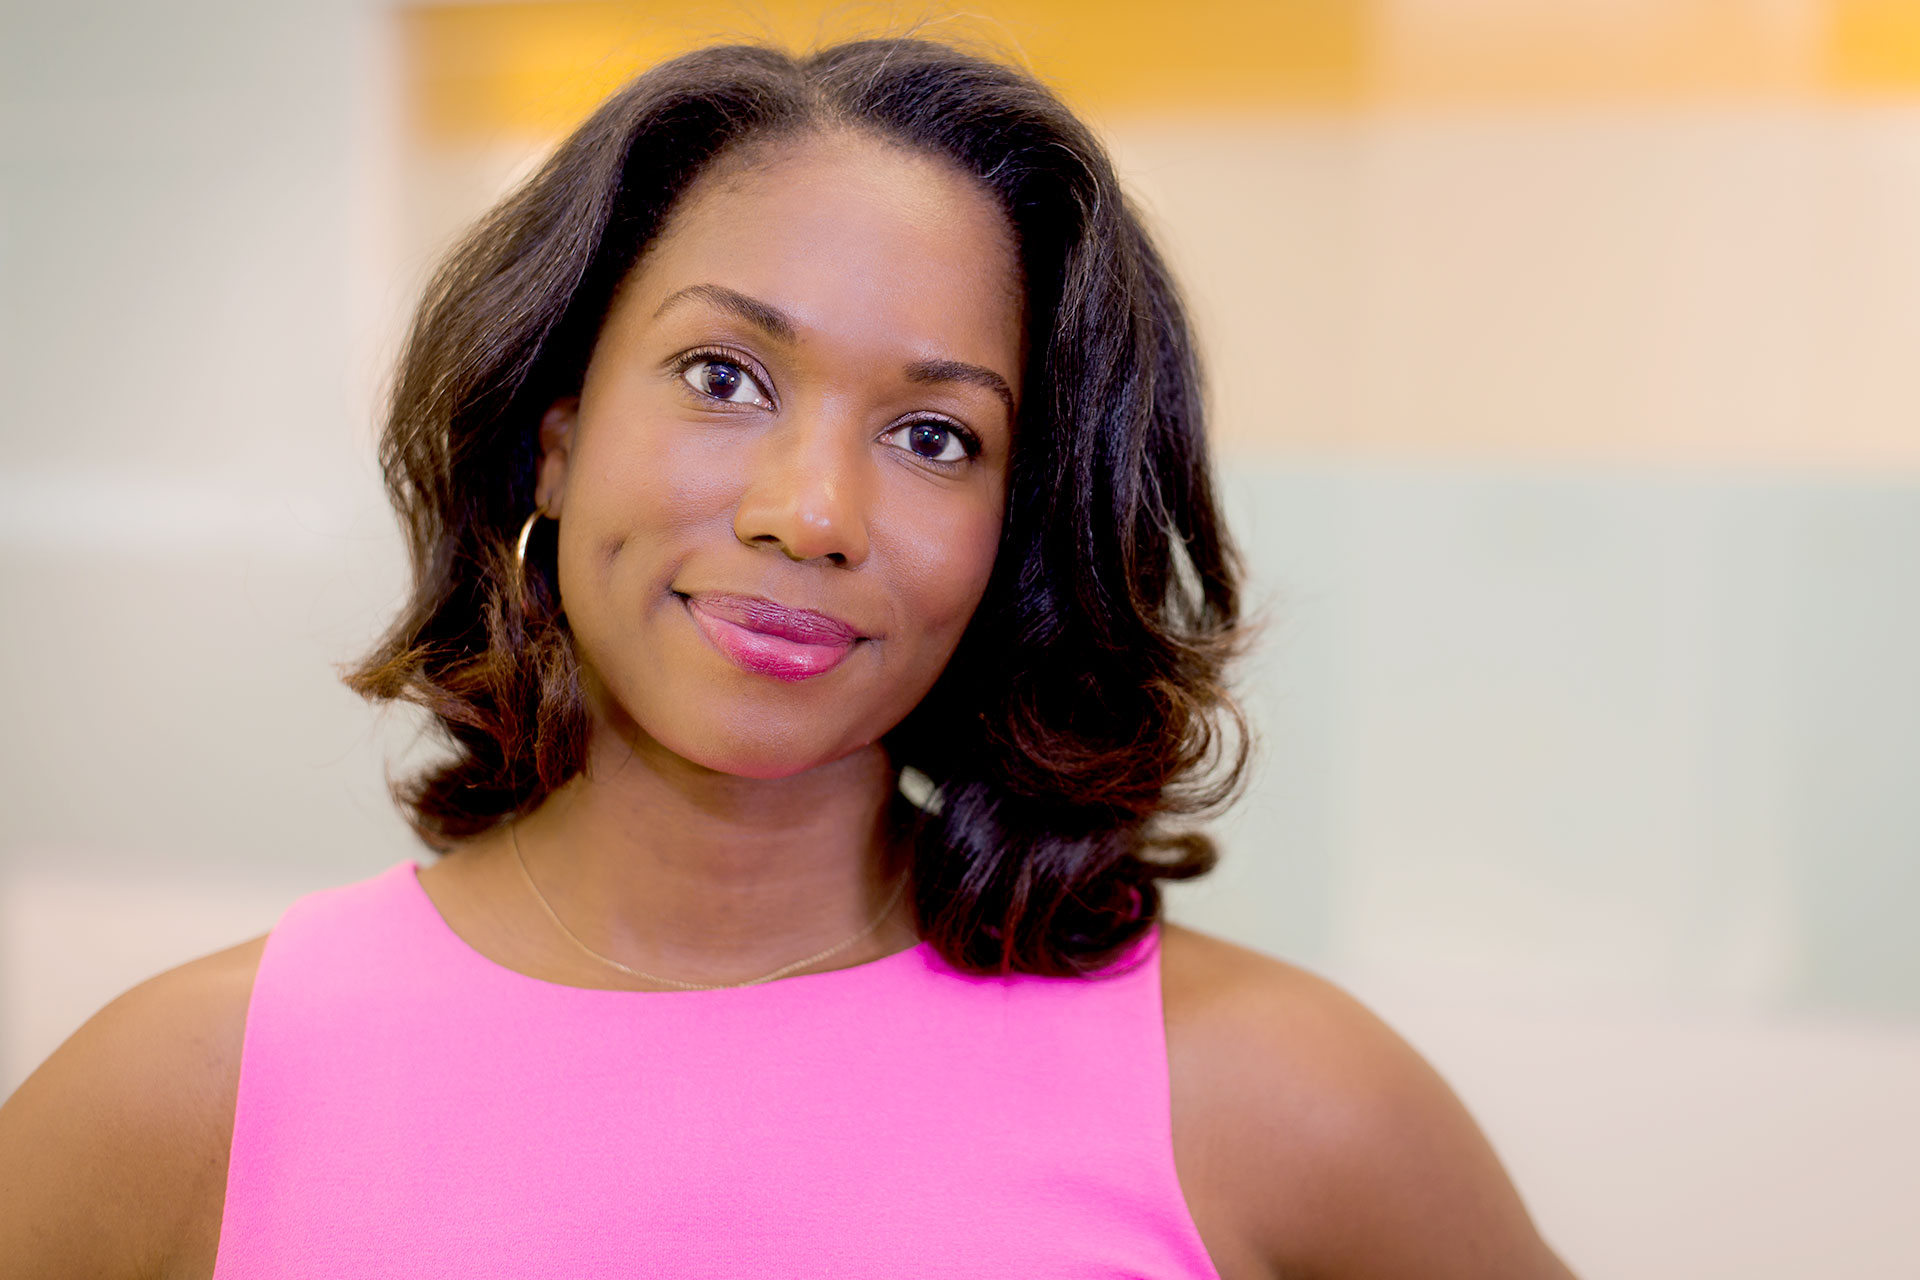 Profile picture of Jeanetta Joseph, the founder of Spa Flow